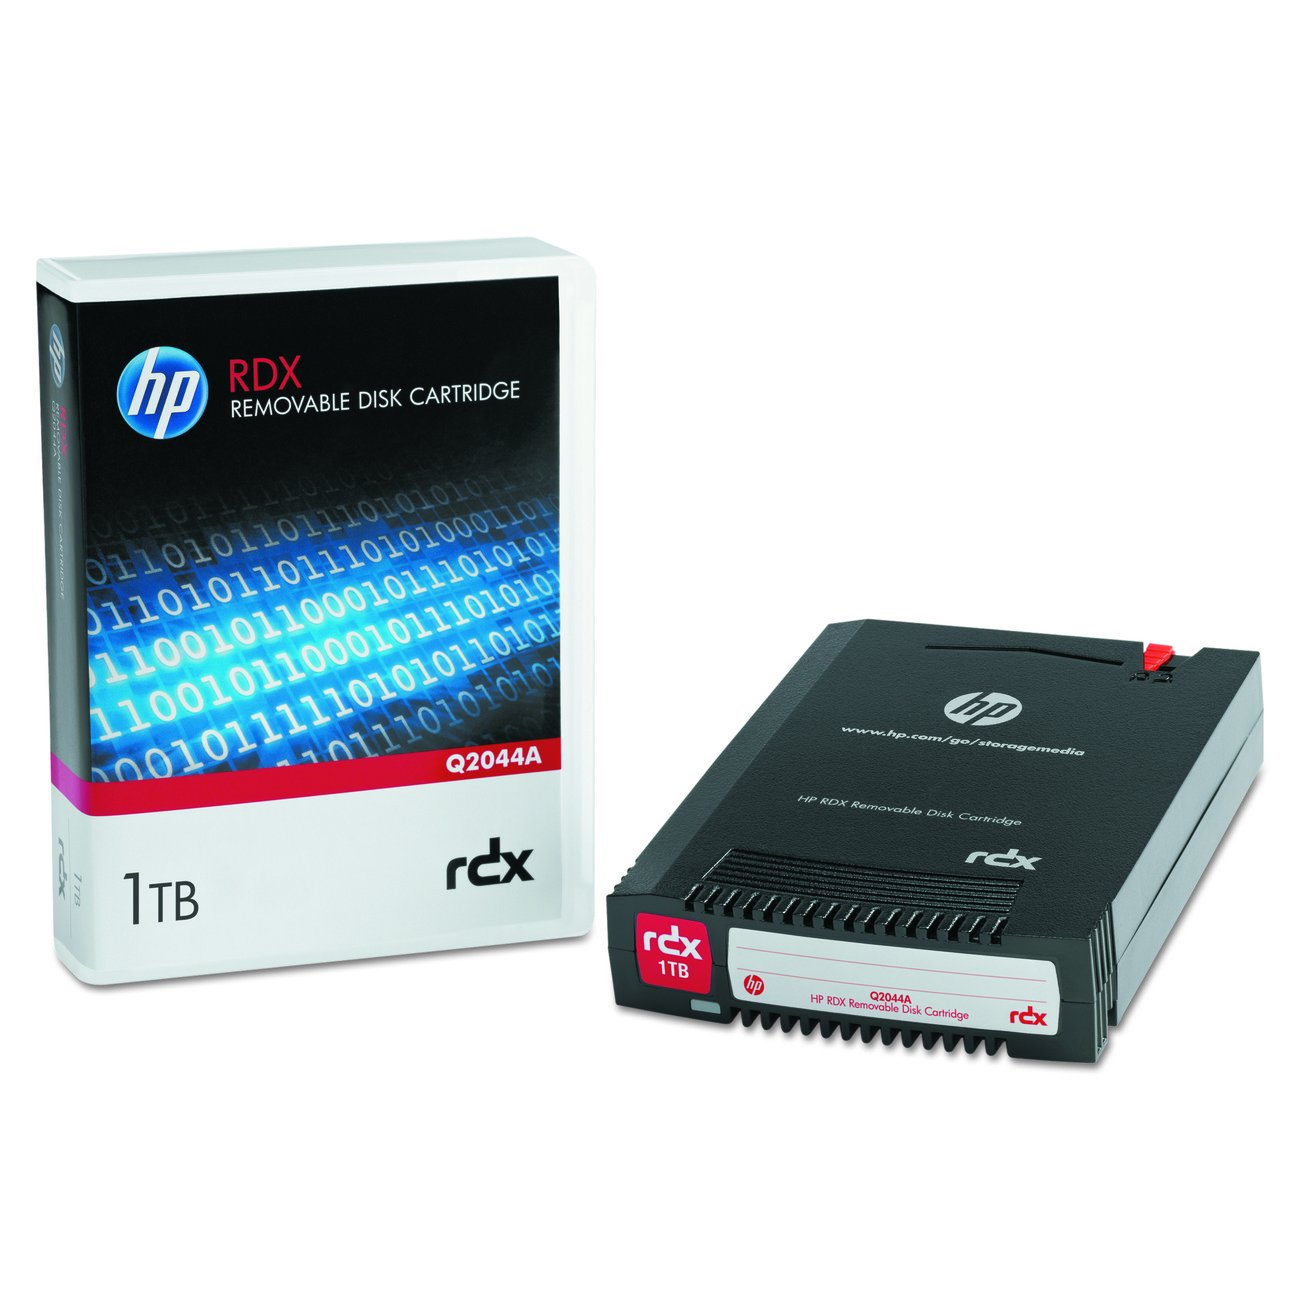 Rdx 1TB Cartridge Removable Disk